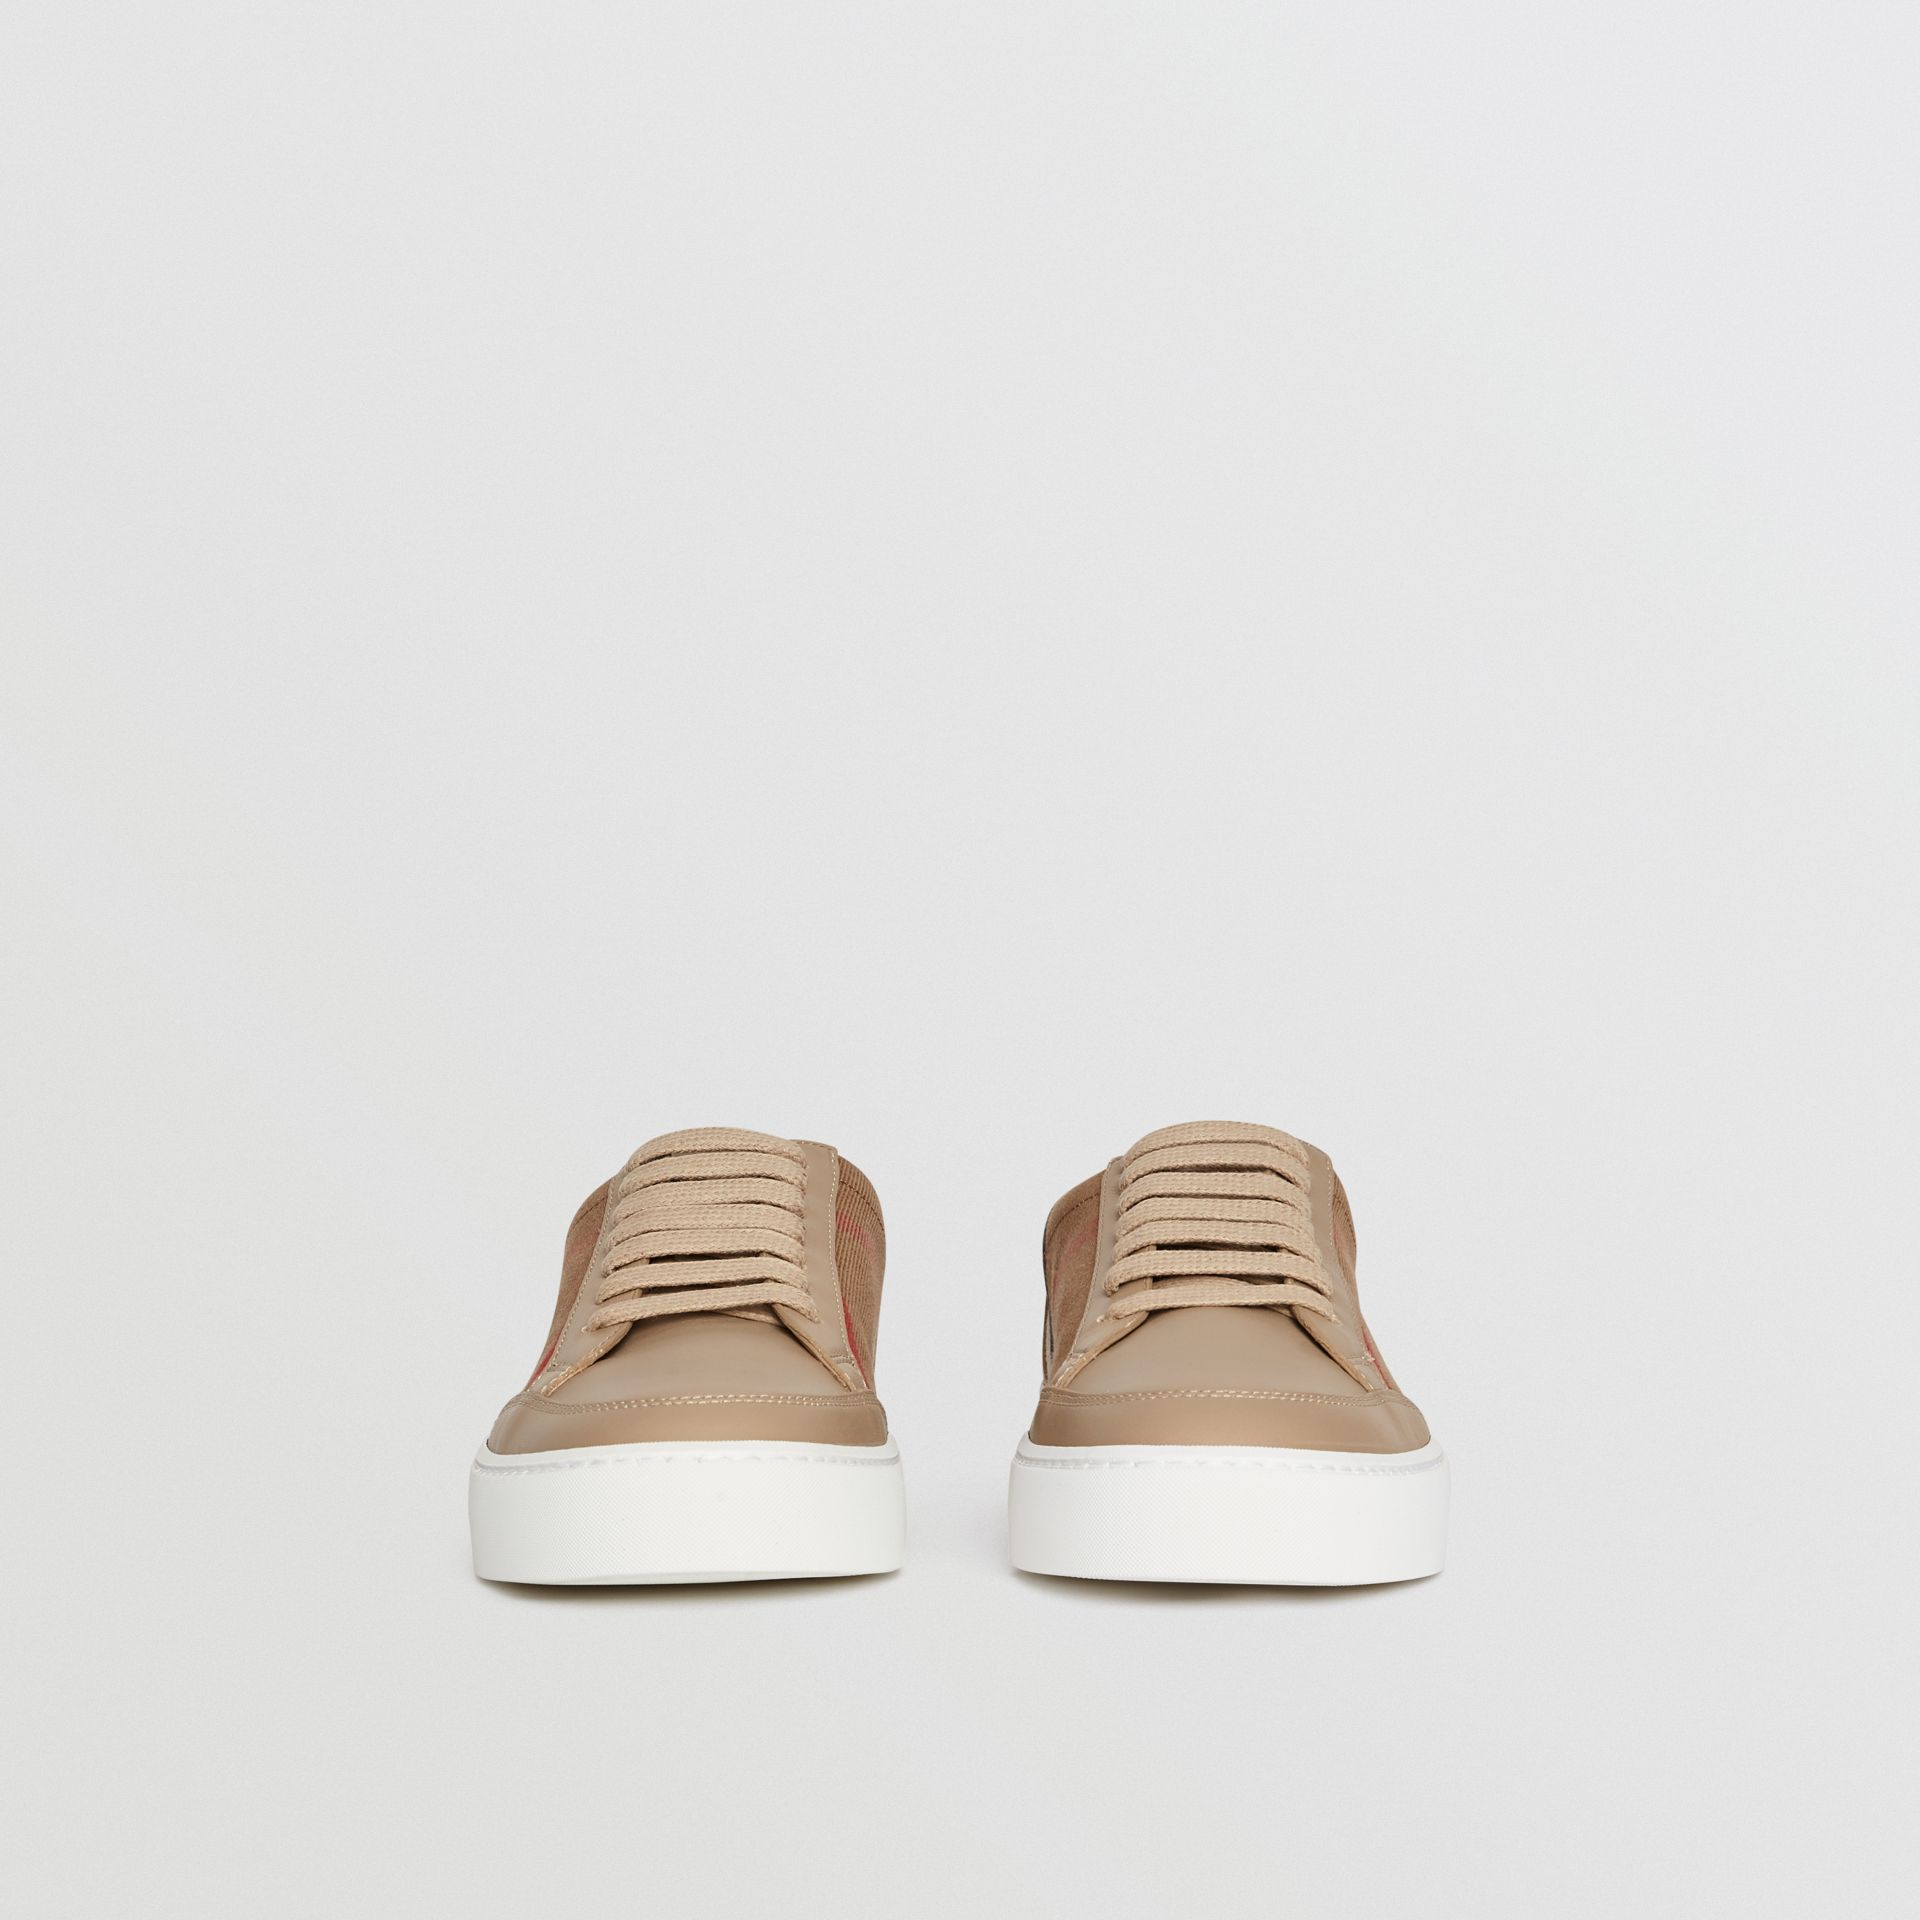 Check Detail Leather Sneakers in House Check/ Nude - Women | Burberry United States - gallery image 3